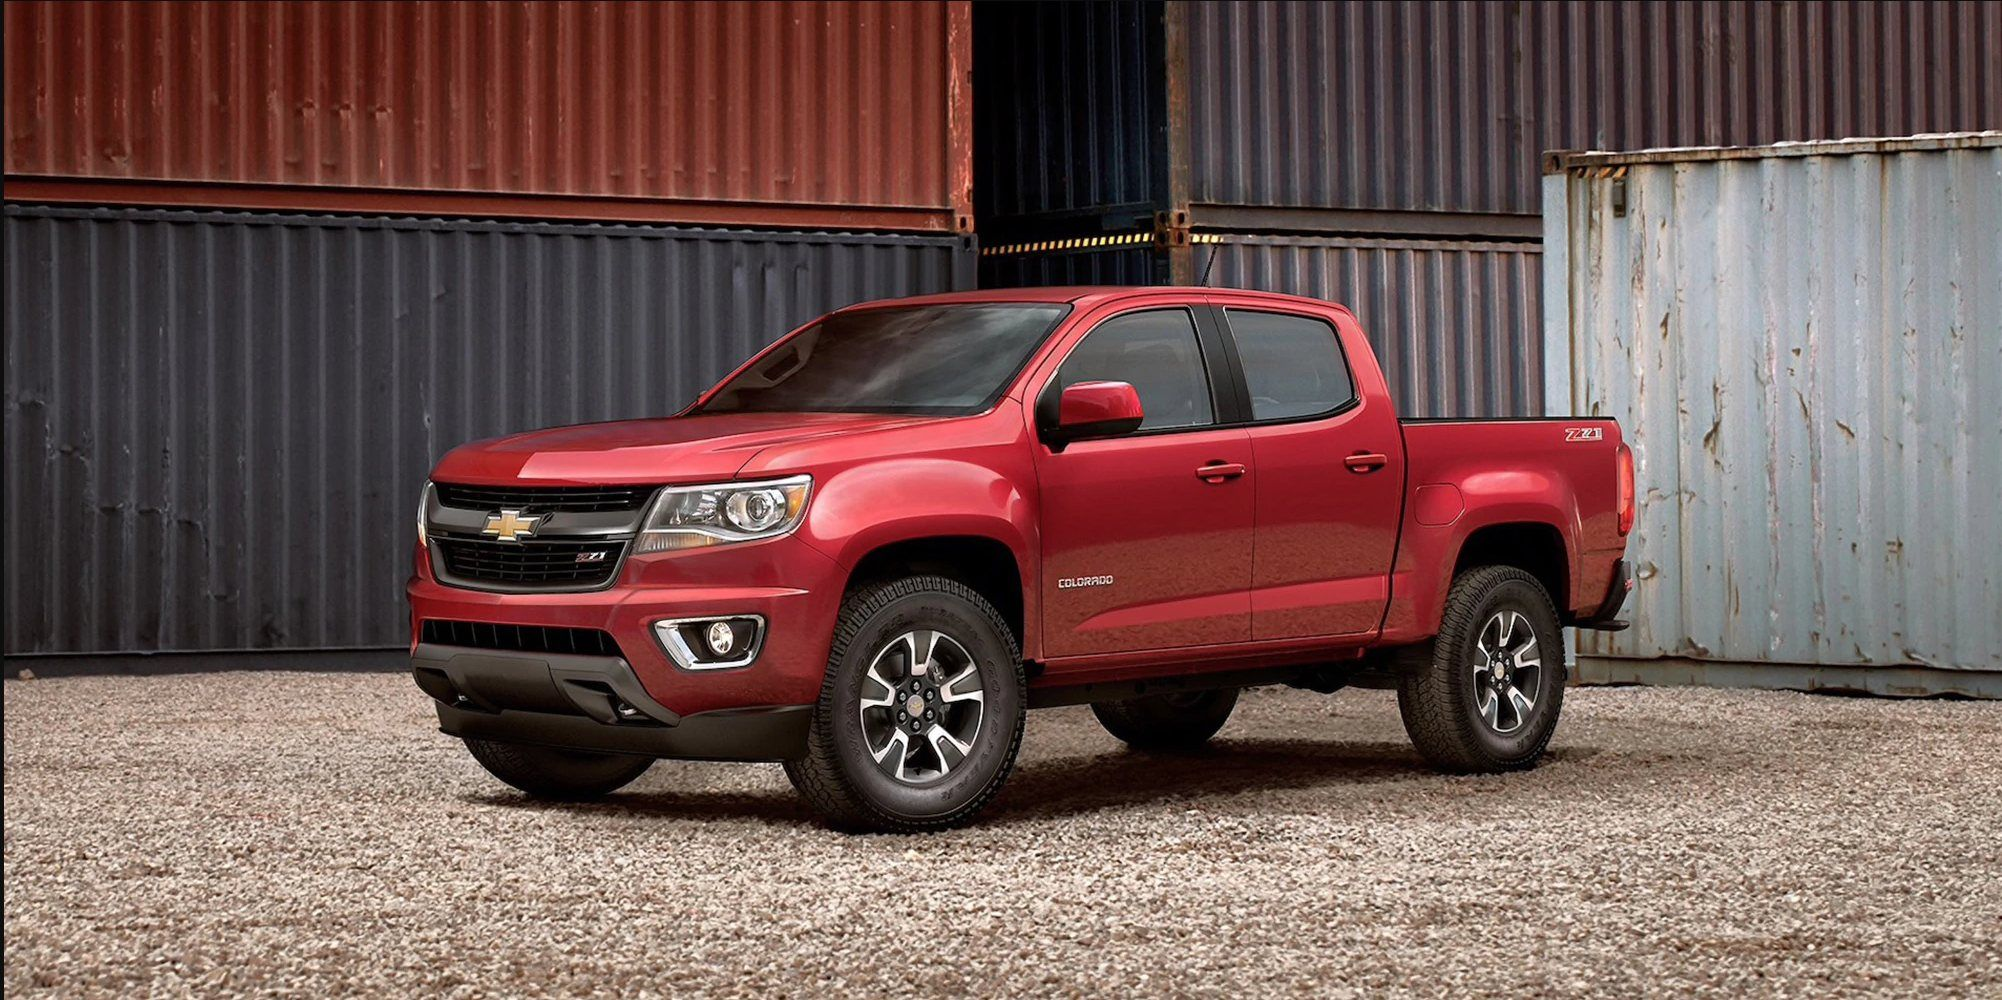 2020 Chevy Tahoe Redesign And Concept In 2020 Chevy Tahoe Chevy Tahoe Z71 Chevrolet Colorado